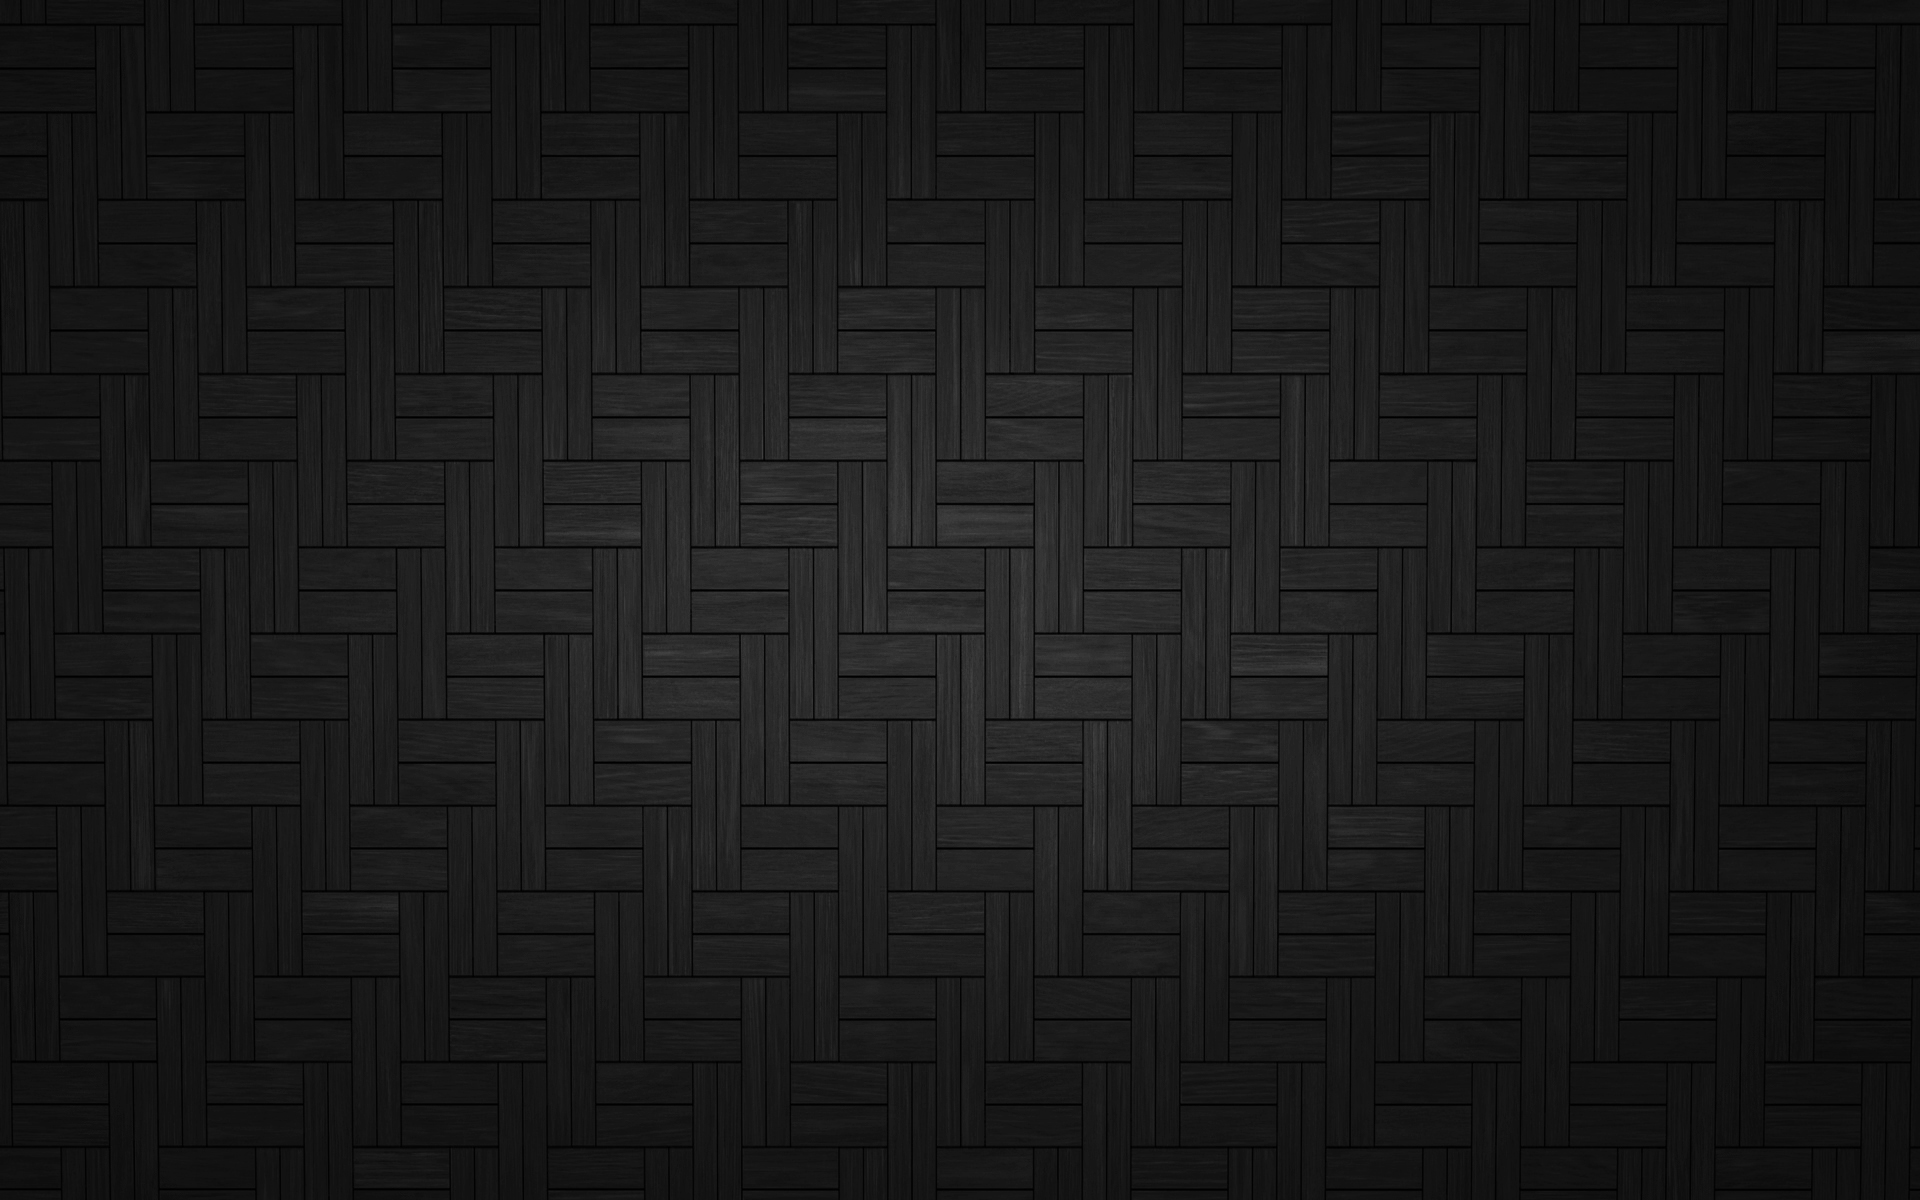 Download 500+ Wallpaper Black Background Paling Keren